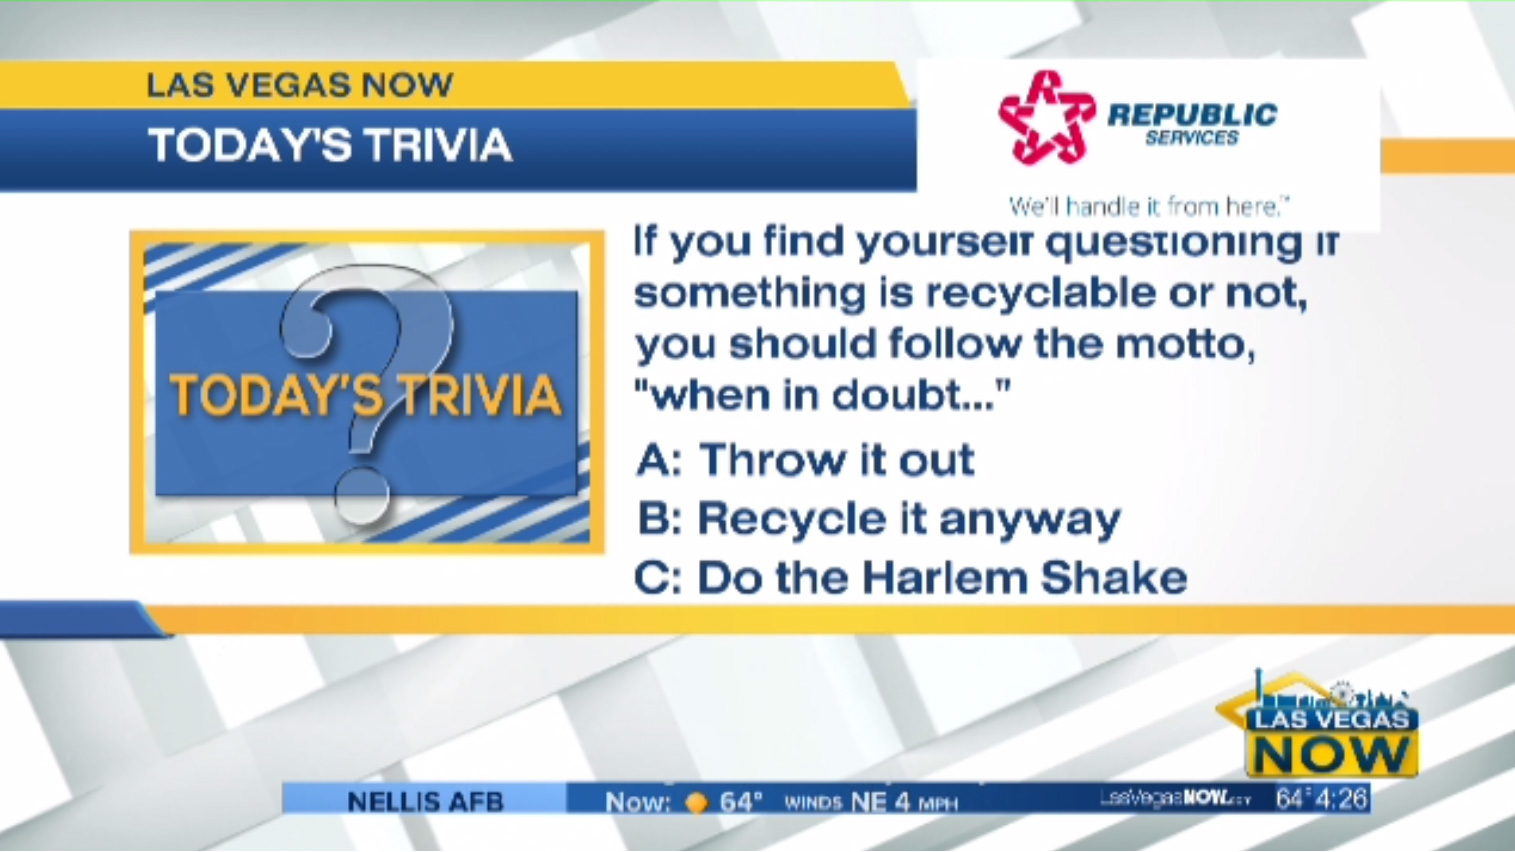 Questioning whether something is recyclable or not?